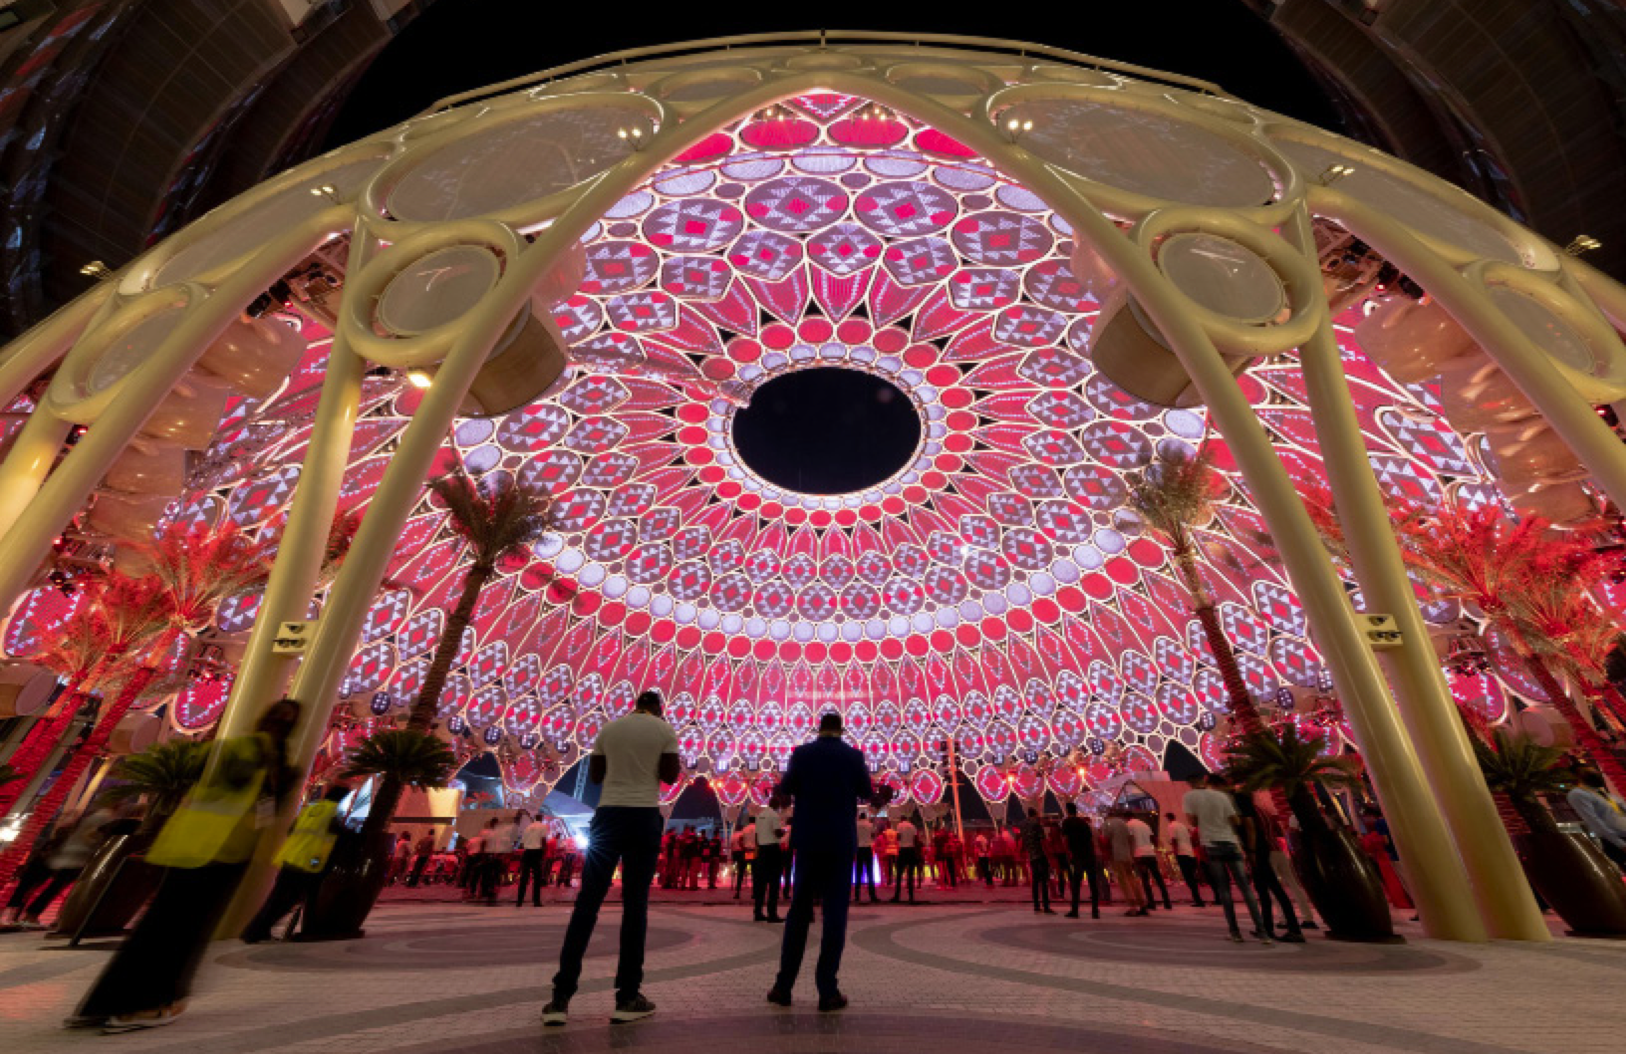 Expo 2020 brought positivity, new events to UAE: experts